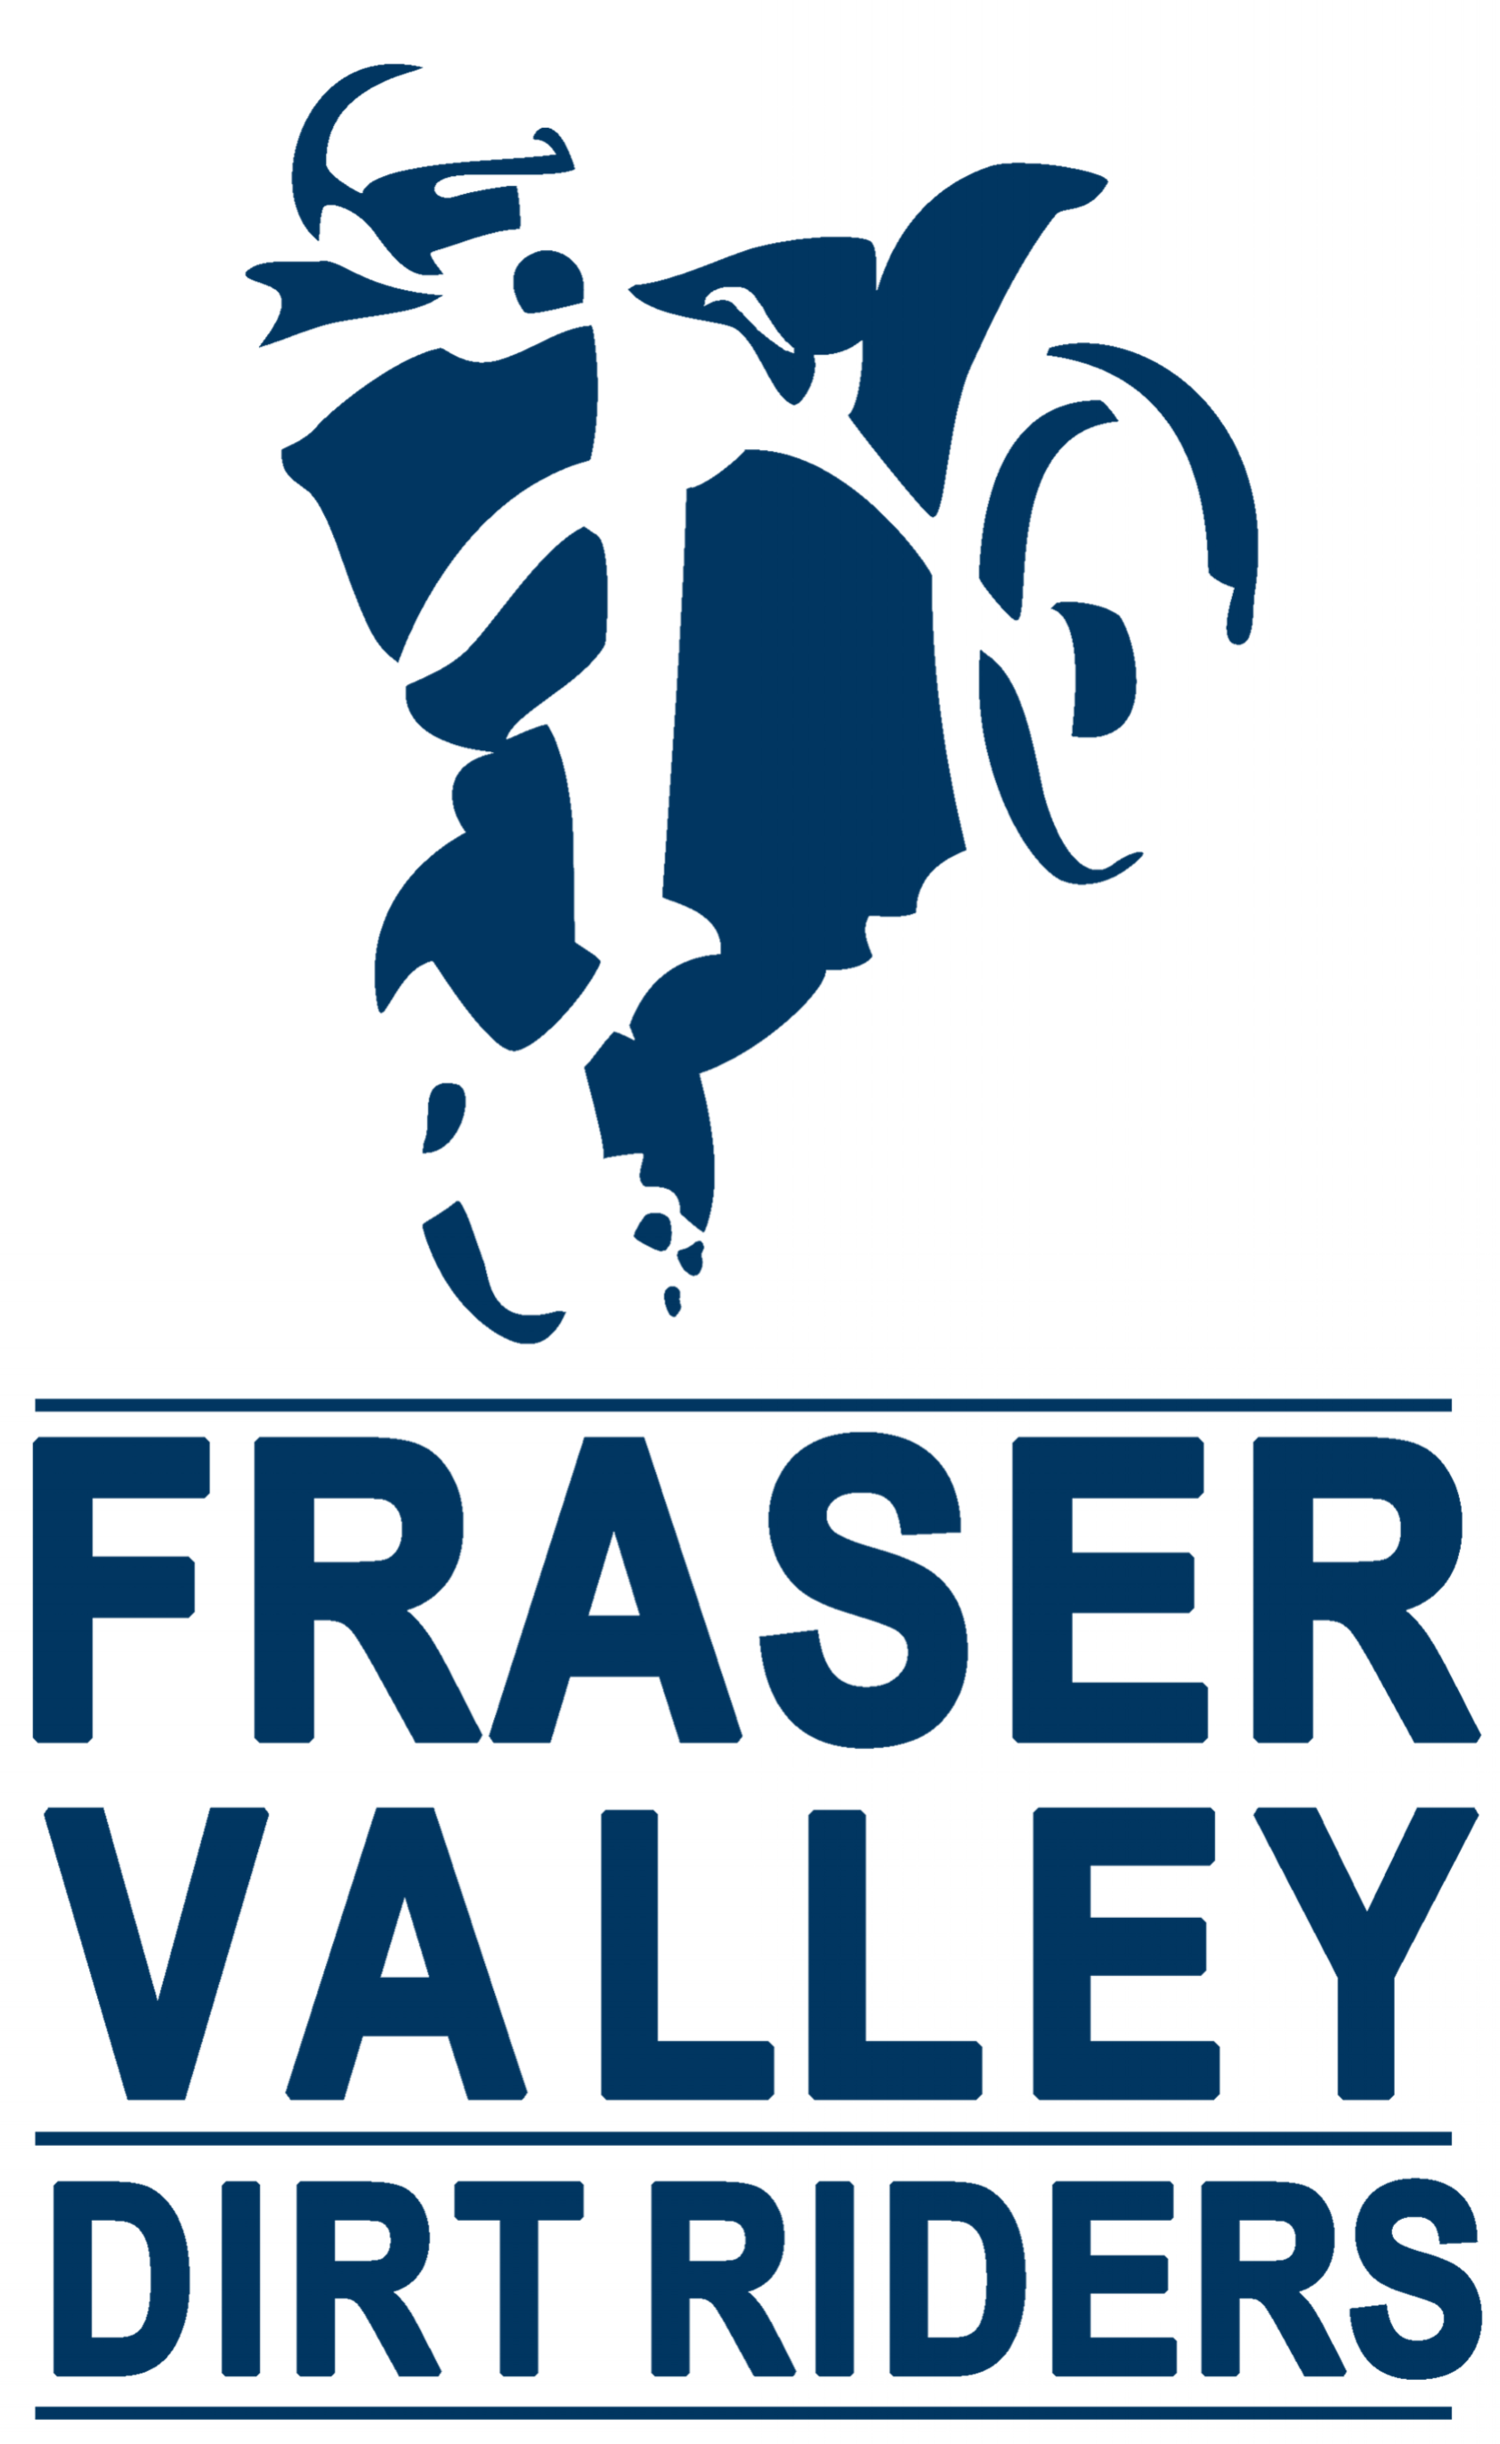 FRASER VALLEY DIRT RIDERS